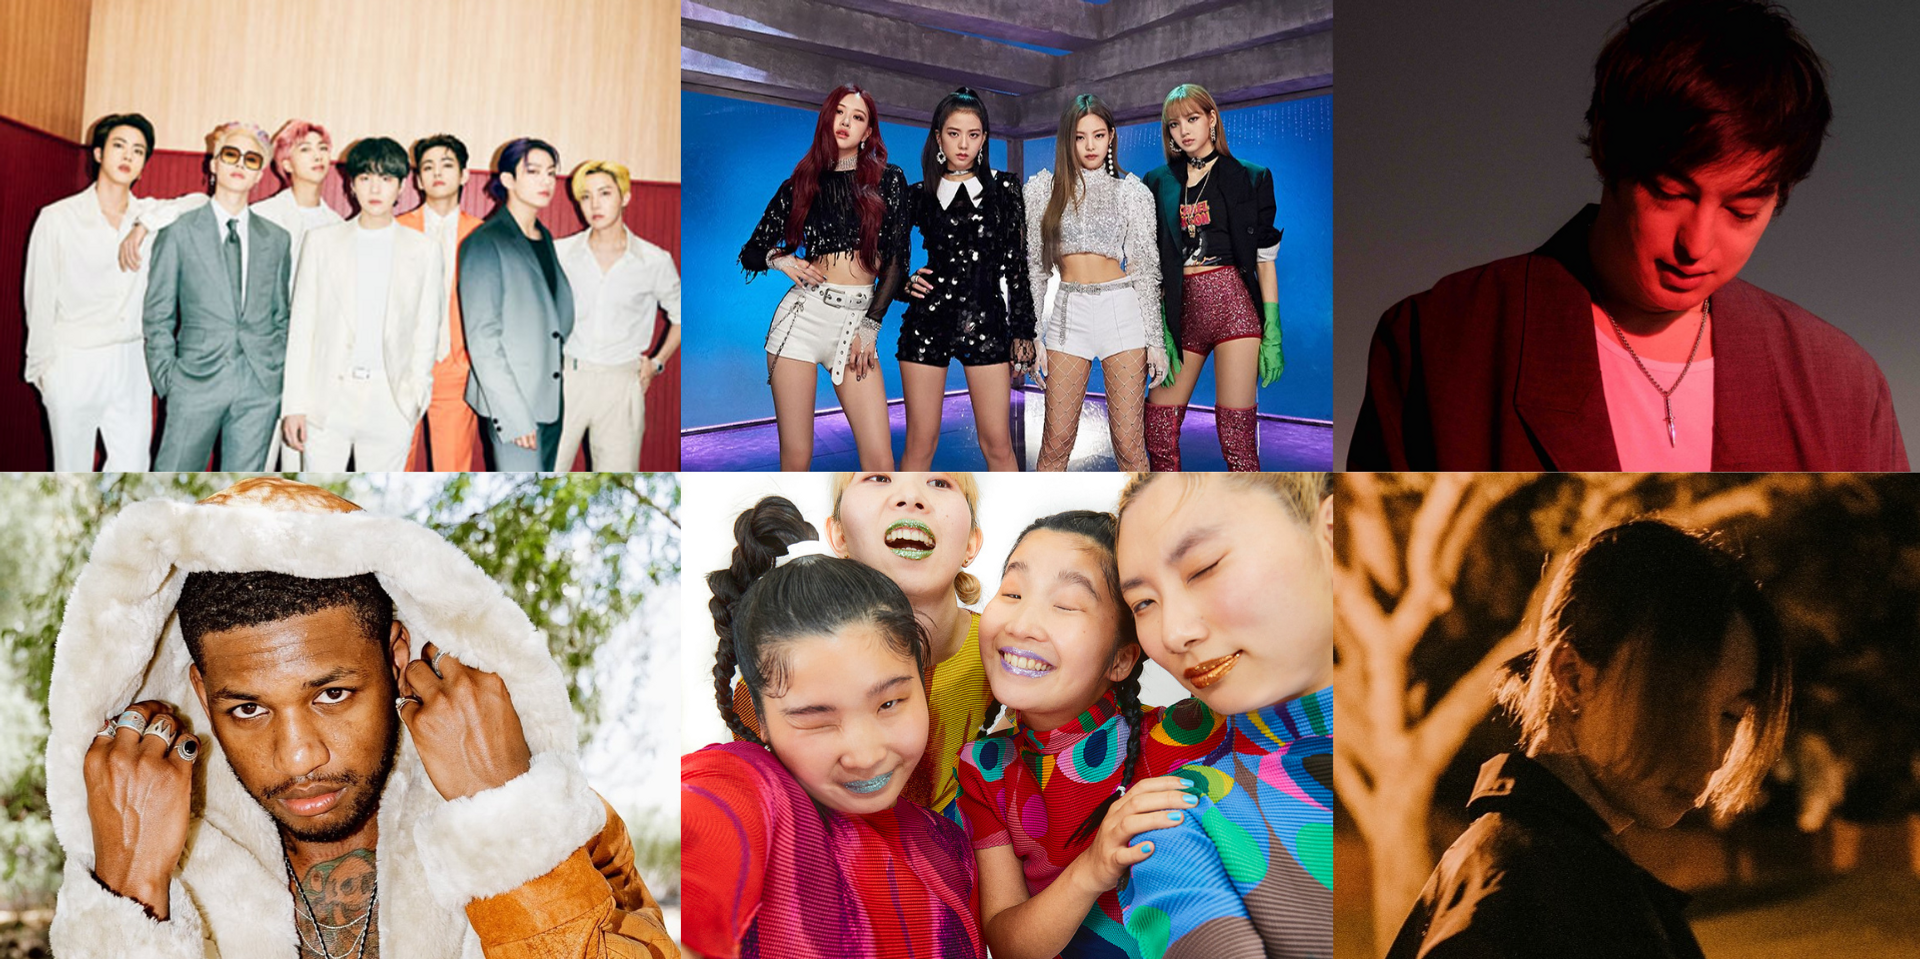 BTS, BLACKPINK, CHAI, keshi, Joji, Guapdad 4000, and more nominated for 1st LION AWARDS, watch it on Twitch